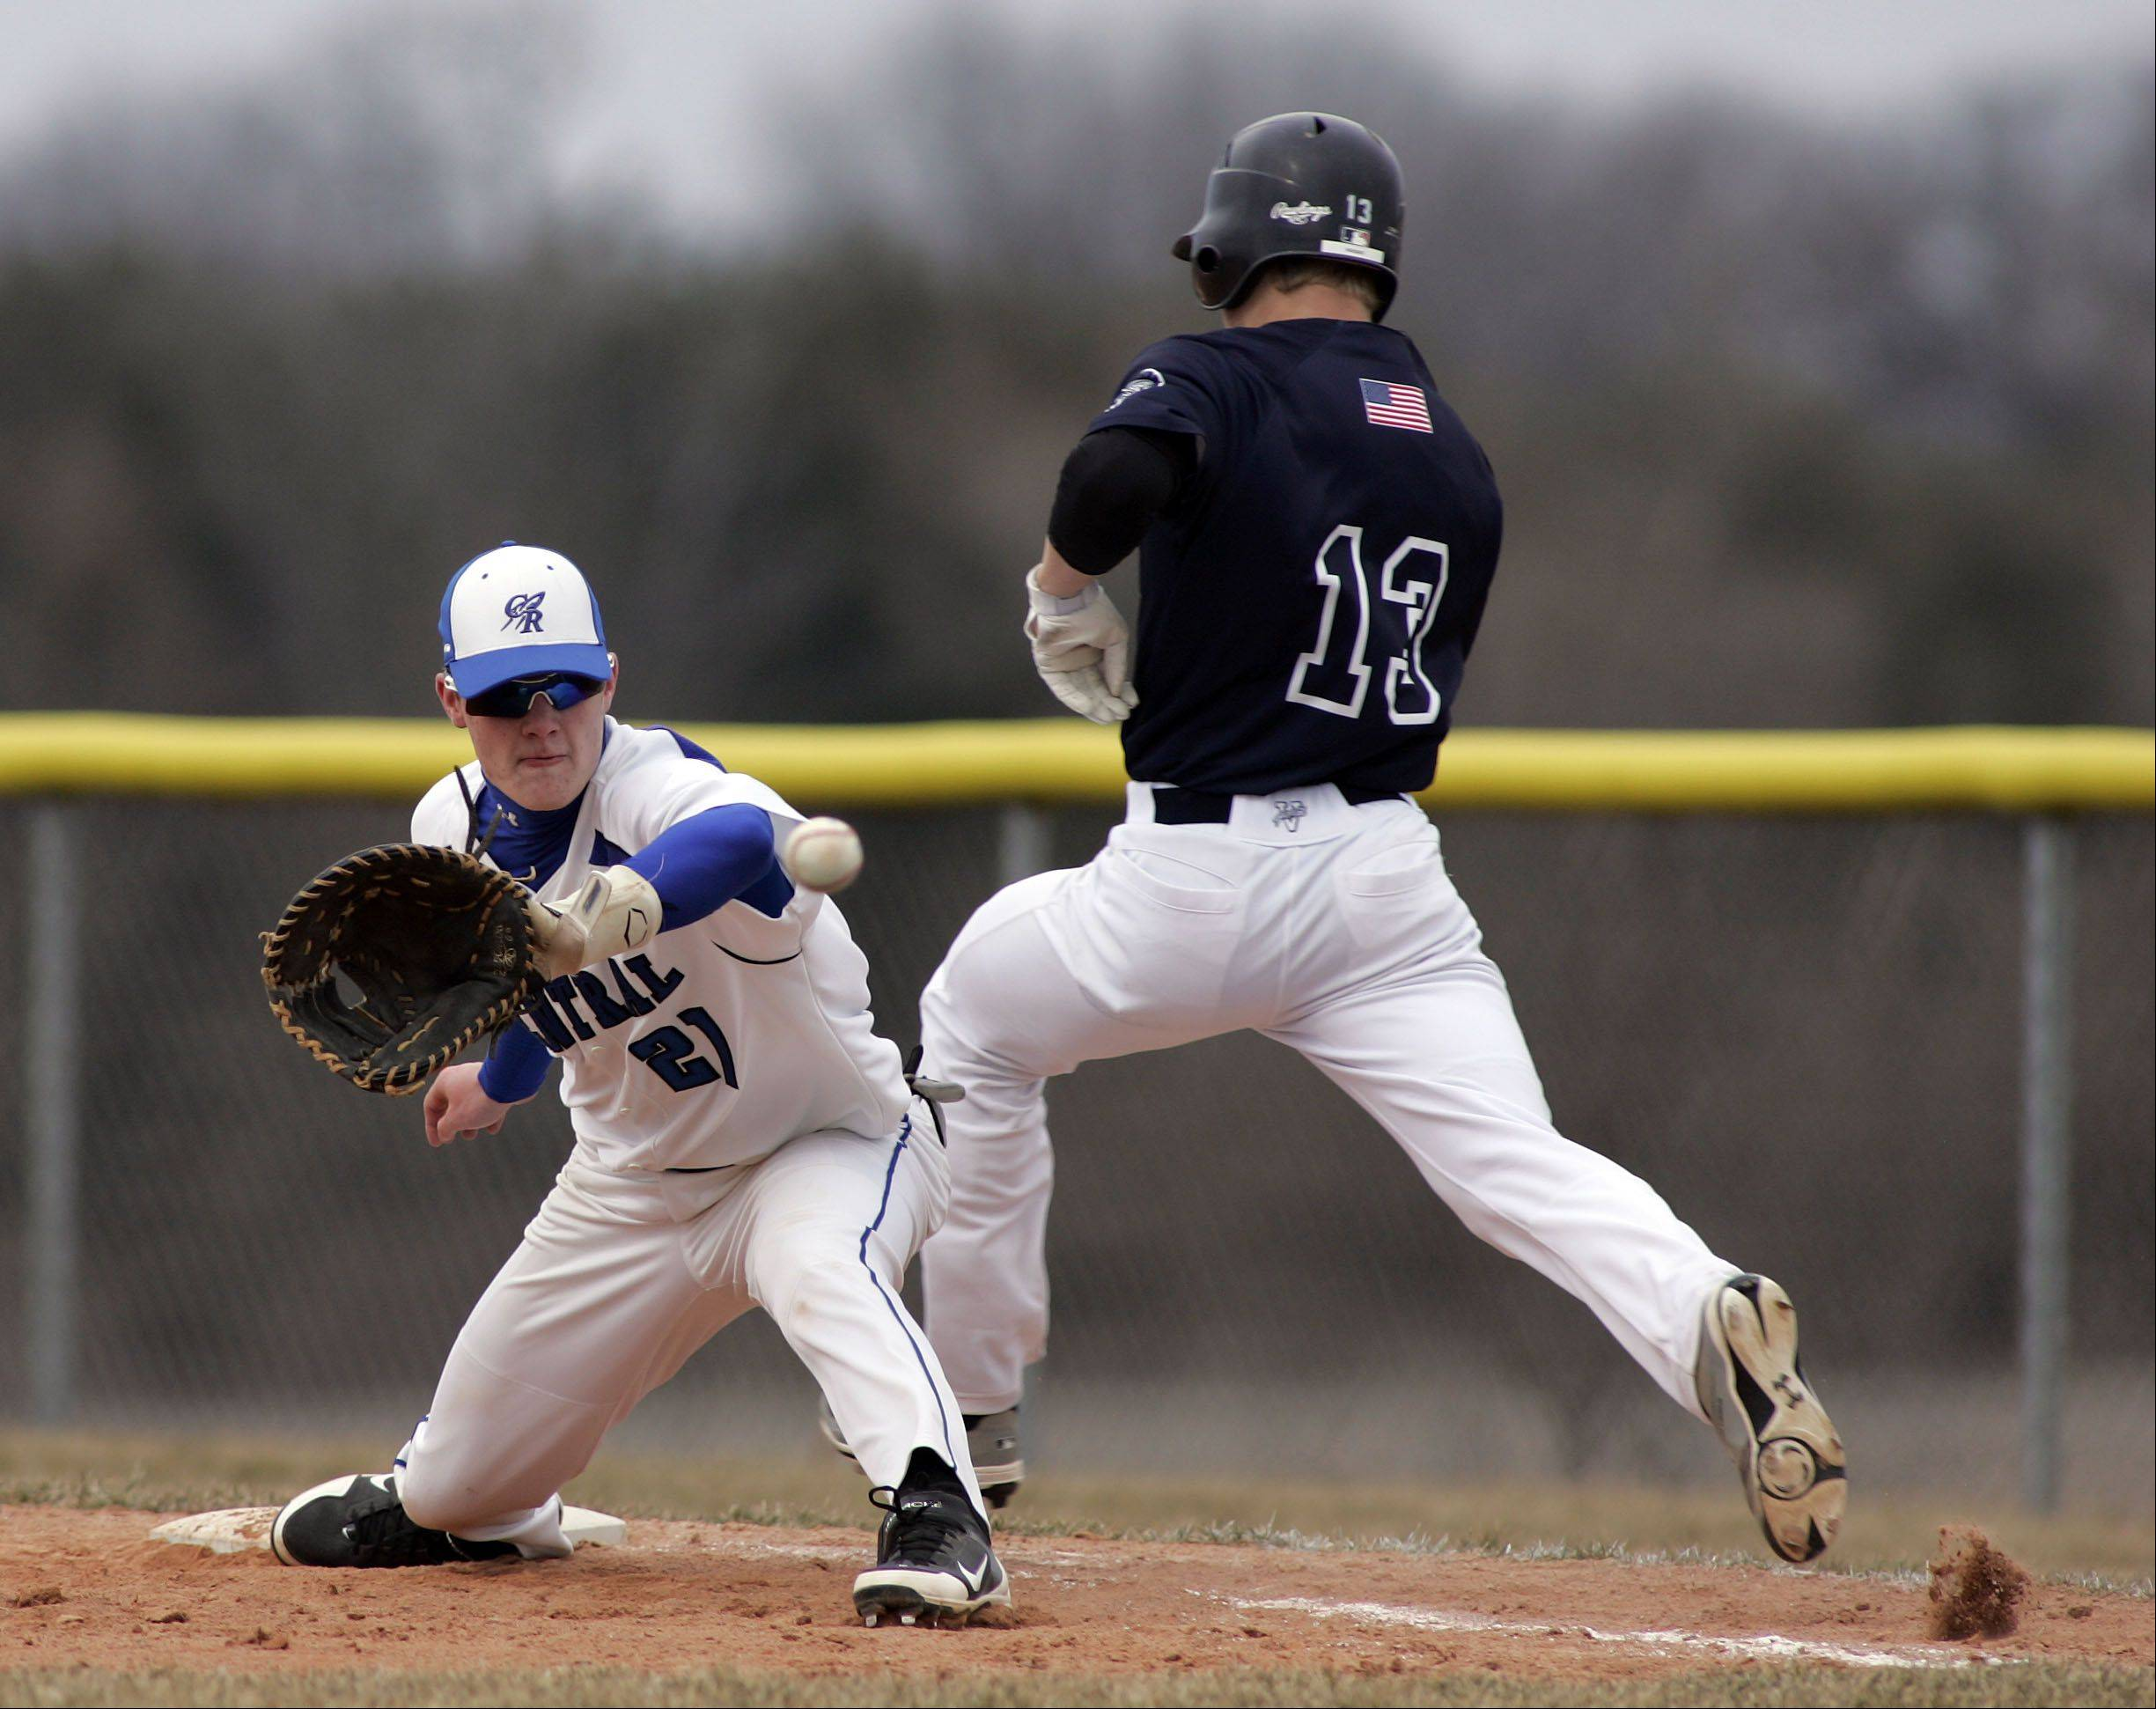 Cary-Grove's Jeremy Vasquez can't quite get to the base in time as Burlington Central's Danny Gerke reels in the ball during baseball Saturday at Burlington Central.